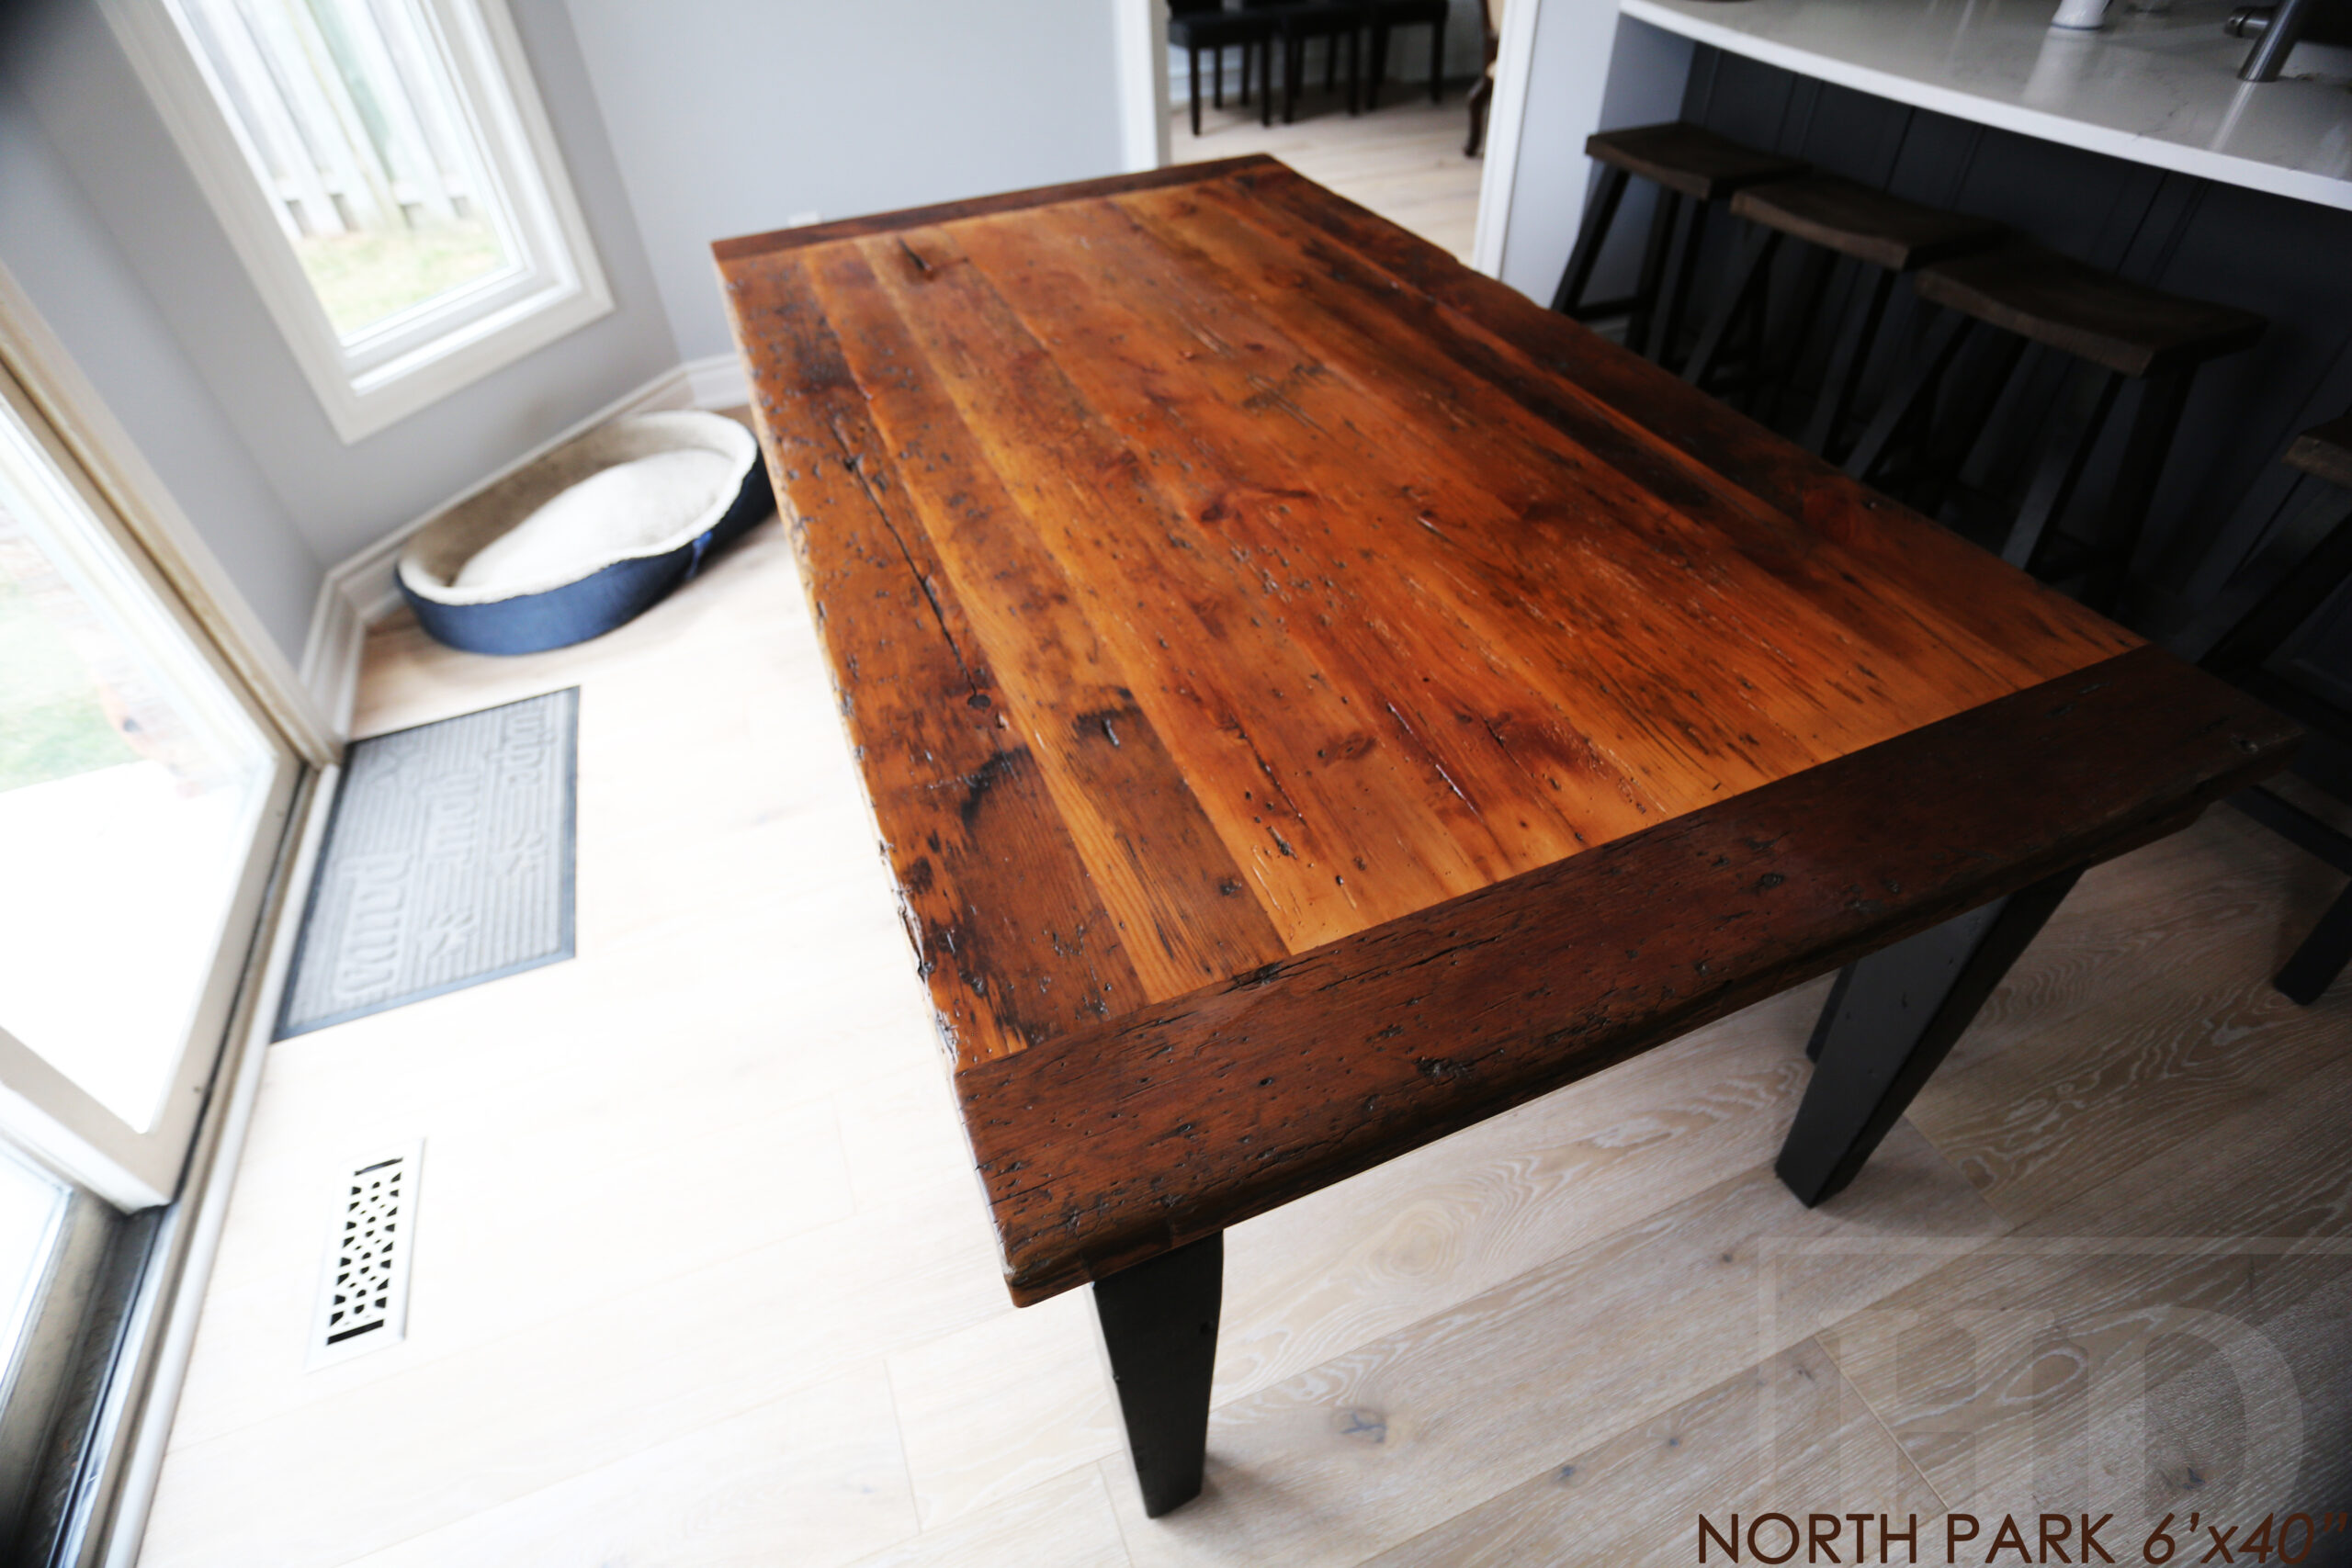 """6' Reclaimed Wood Harvest Table for a Mississauga, Ontario Home - 40"""" wide - Reclaimed Hemlock Threshing Floor Construction- Tapered with a Notch Windbrace Beam Legs - Original Distressing/Character/Edges Maintained - Matte polyurethane finish [no epoxy] - Two 12"""" Leaves - 5' [matching] Bench - www.table.ca"""